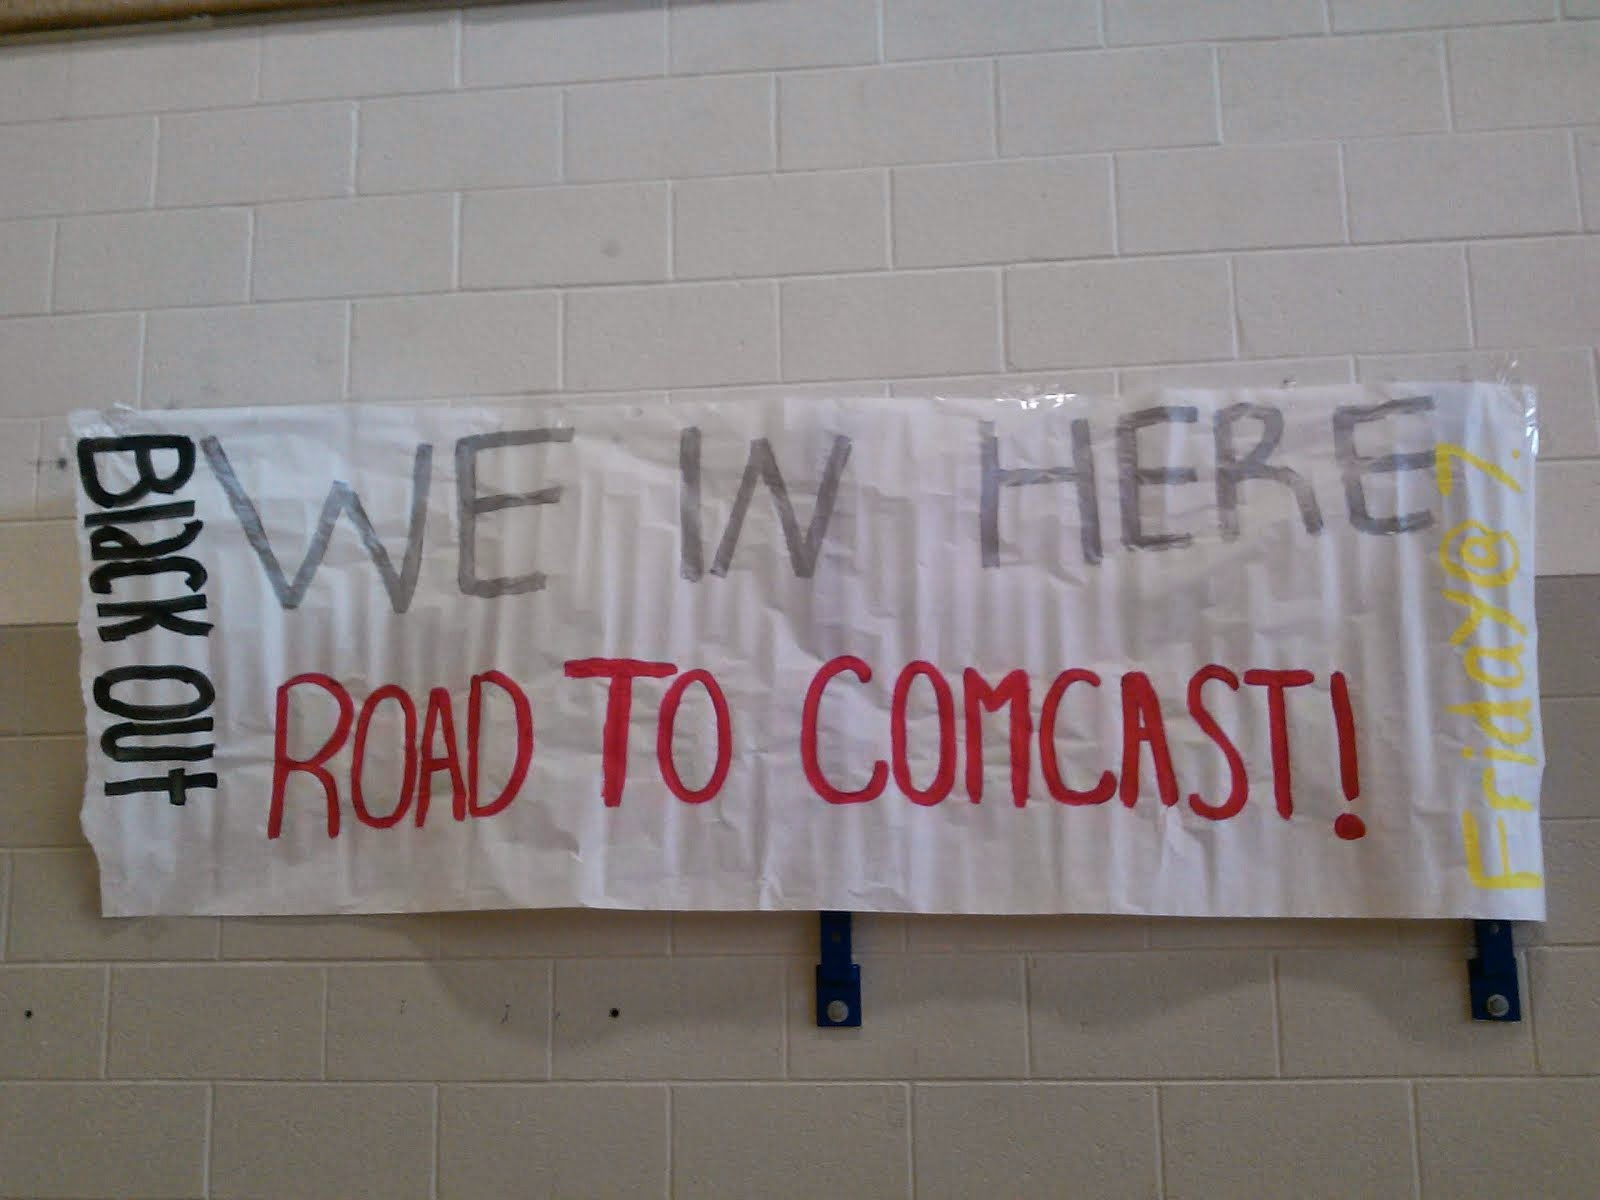 Road to Comcast